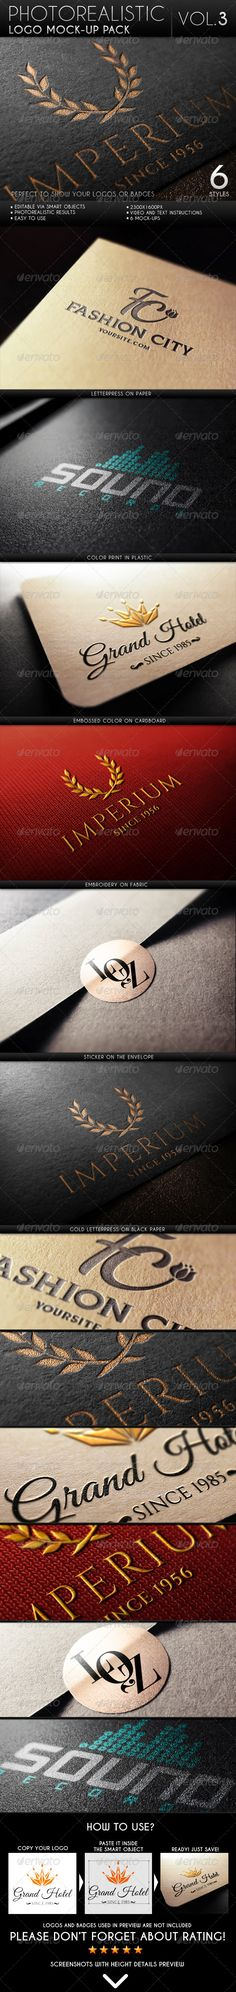 Photorealistic Logo MockUp Pack Vol.3 — Photoshop PSD #3d #realistic • Available here → https://graphicriver.net/item/photorealistic-logo-mockup-pack-vol3/6627640?ref=pxcr